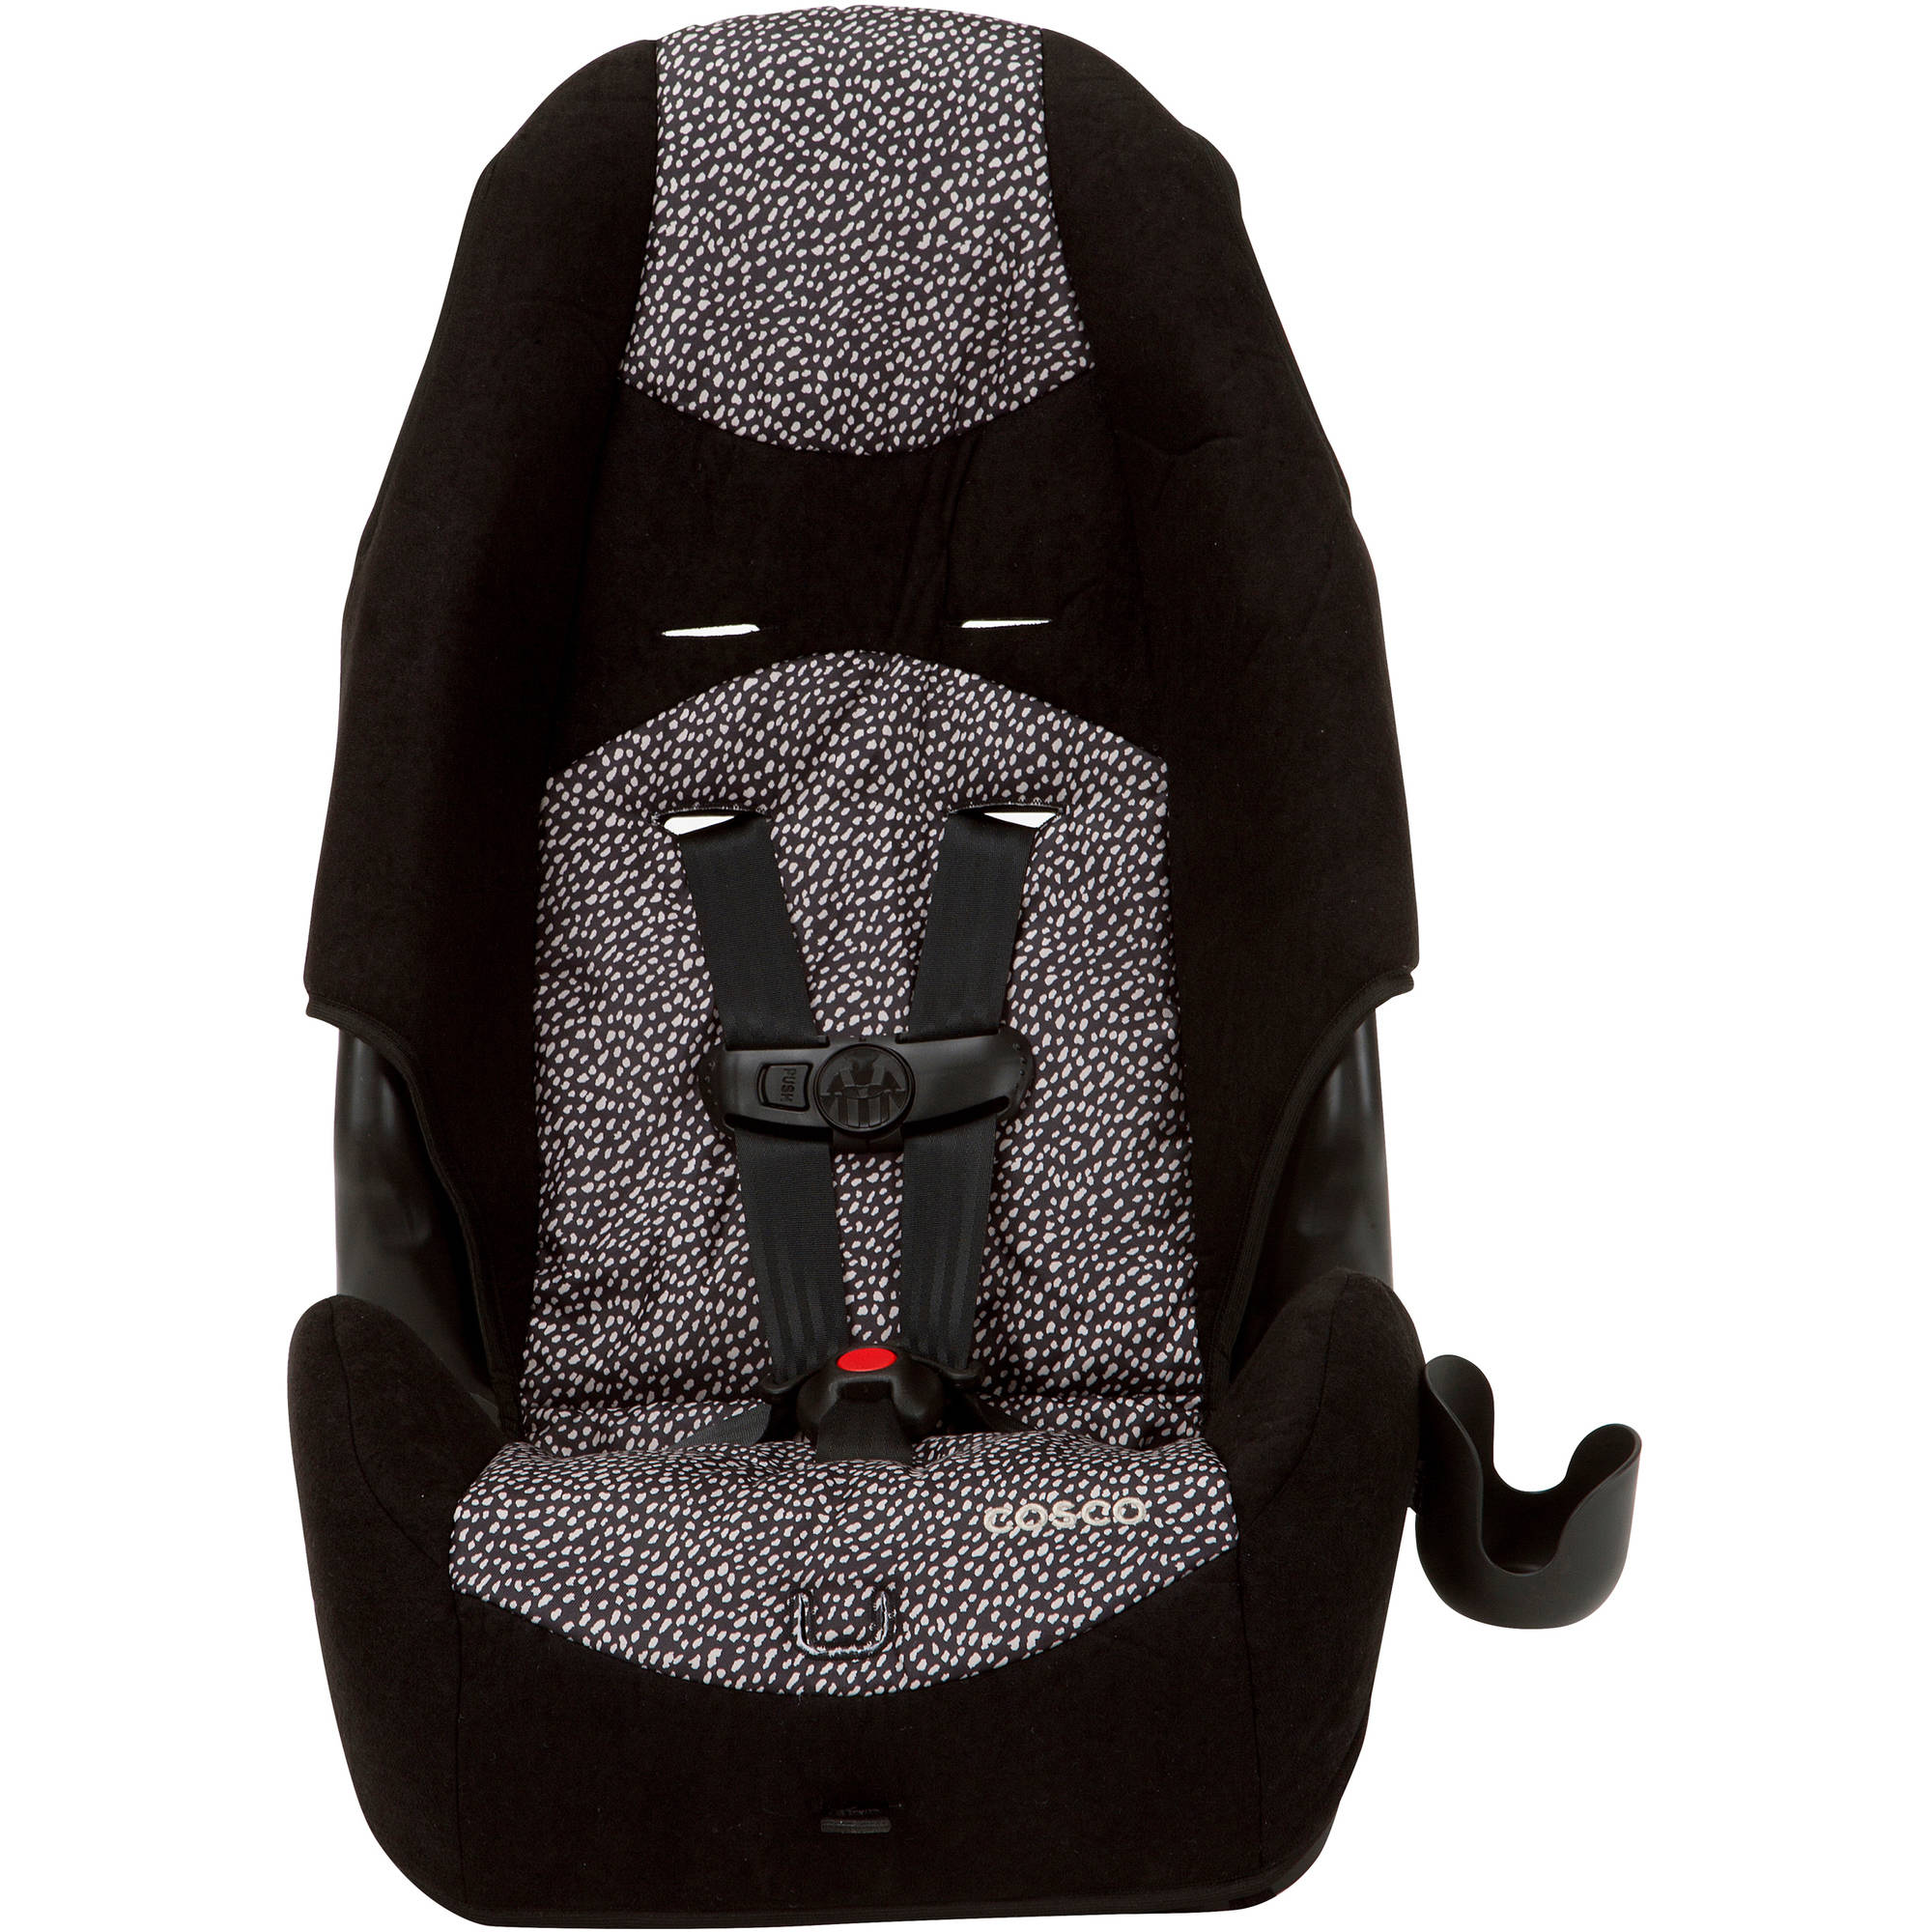 Cosco Highback 2-in-1 Booster Car Seat, Choose Your Pattern | eBay